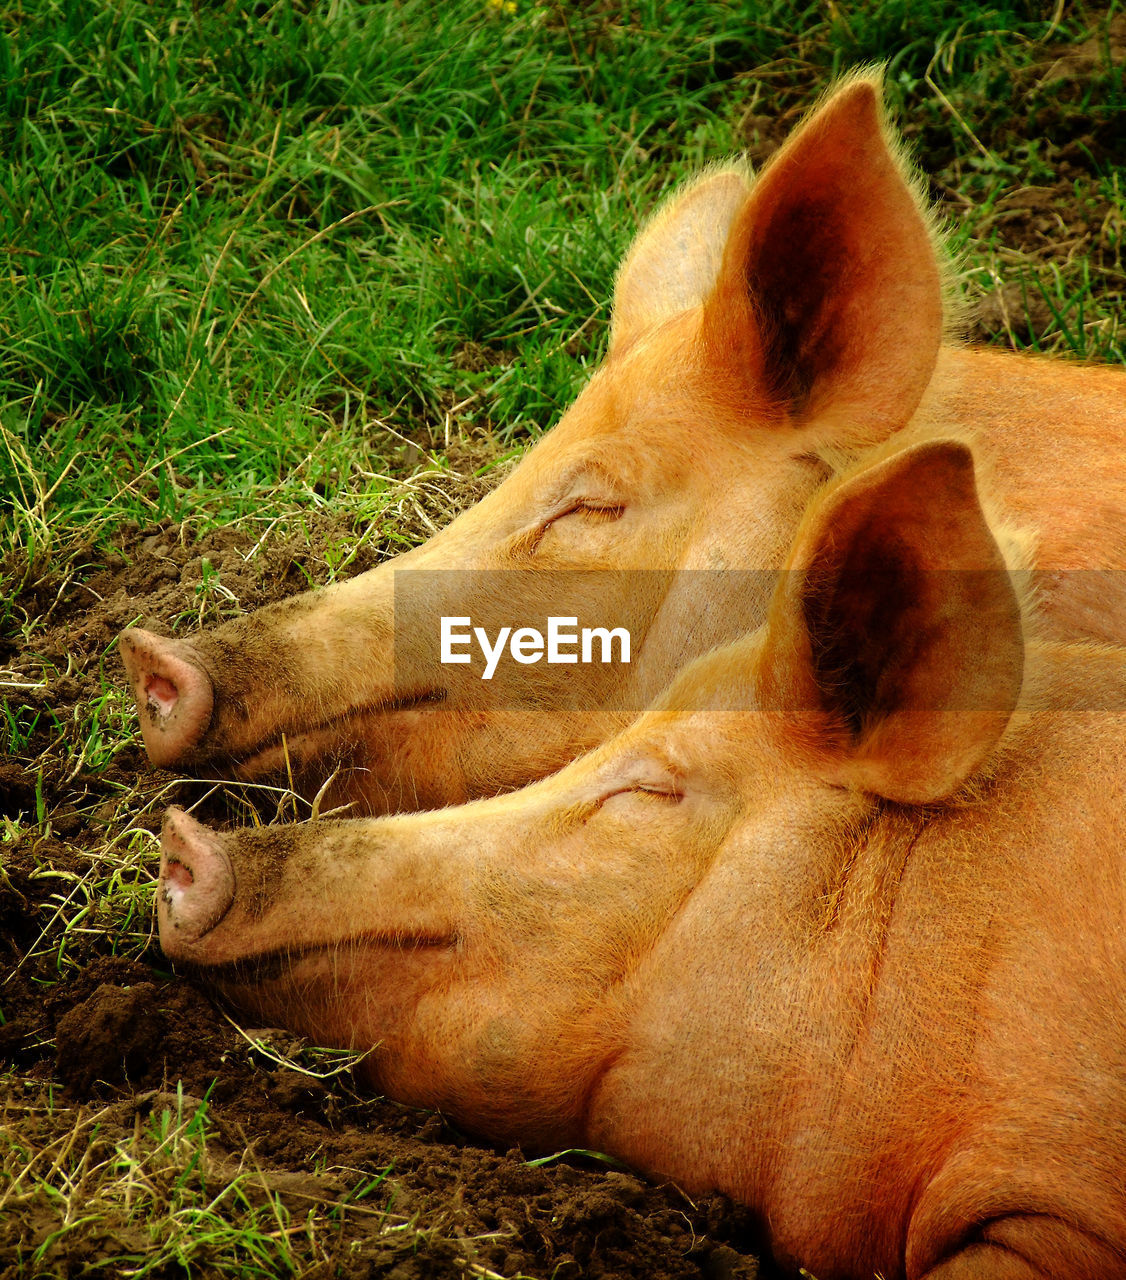 Close-up of pigs sleeping on field